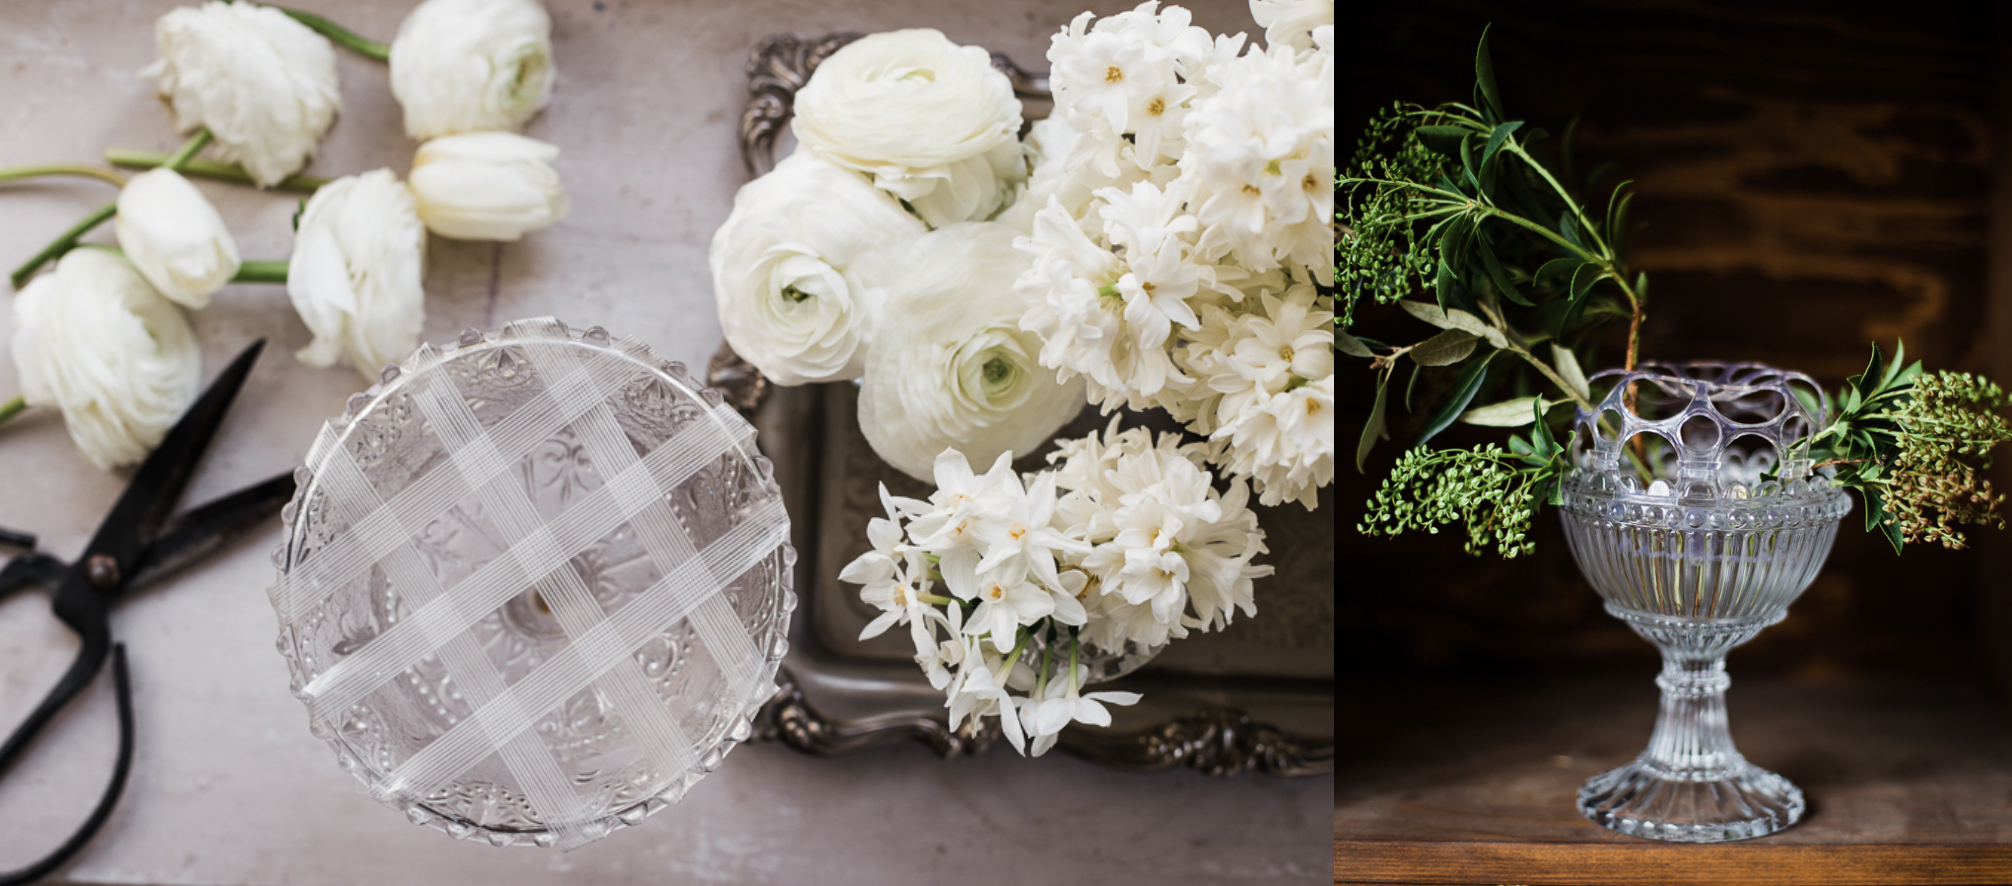 Foam-Free Floral Design Ideas from Sabine Darrall